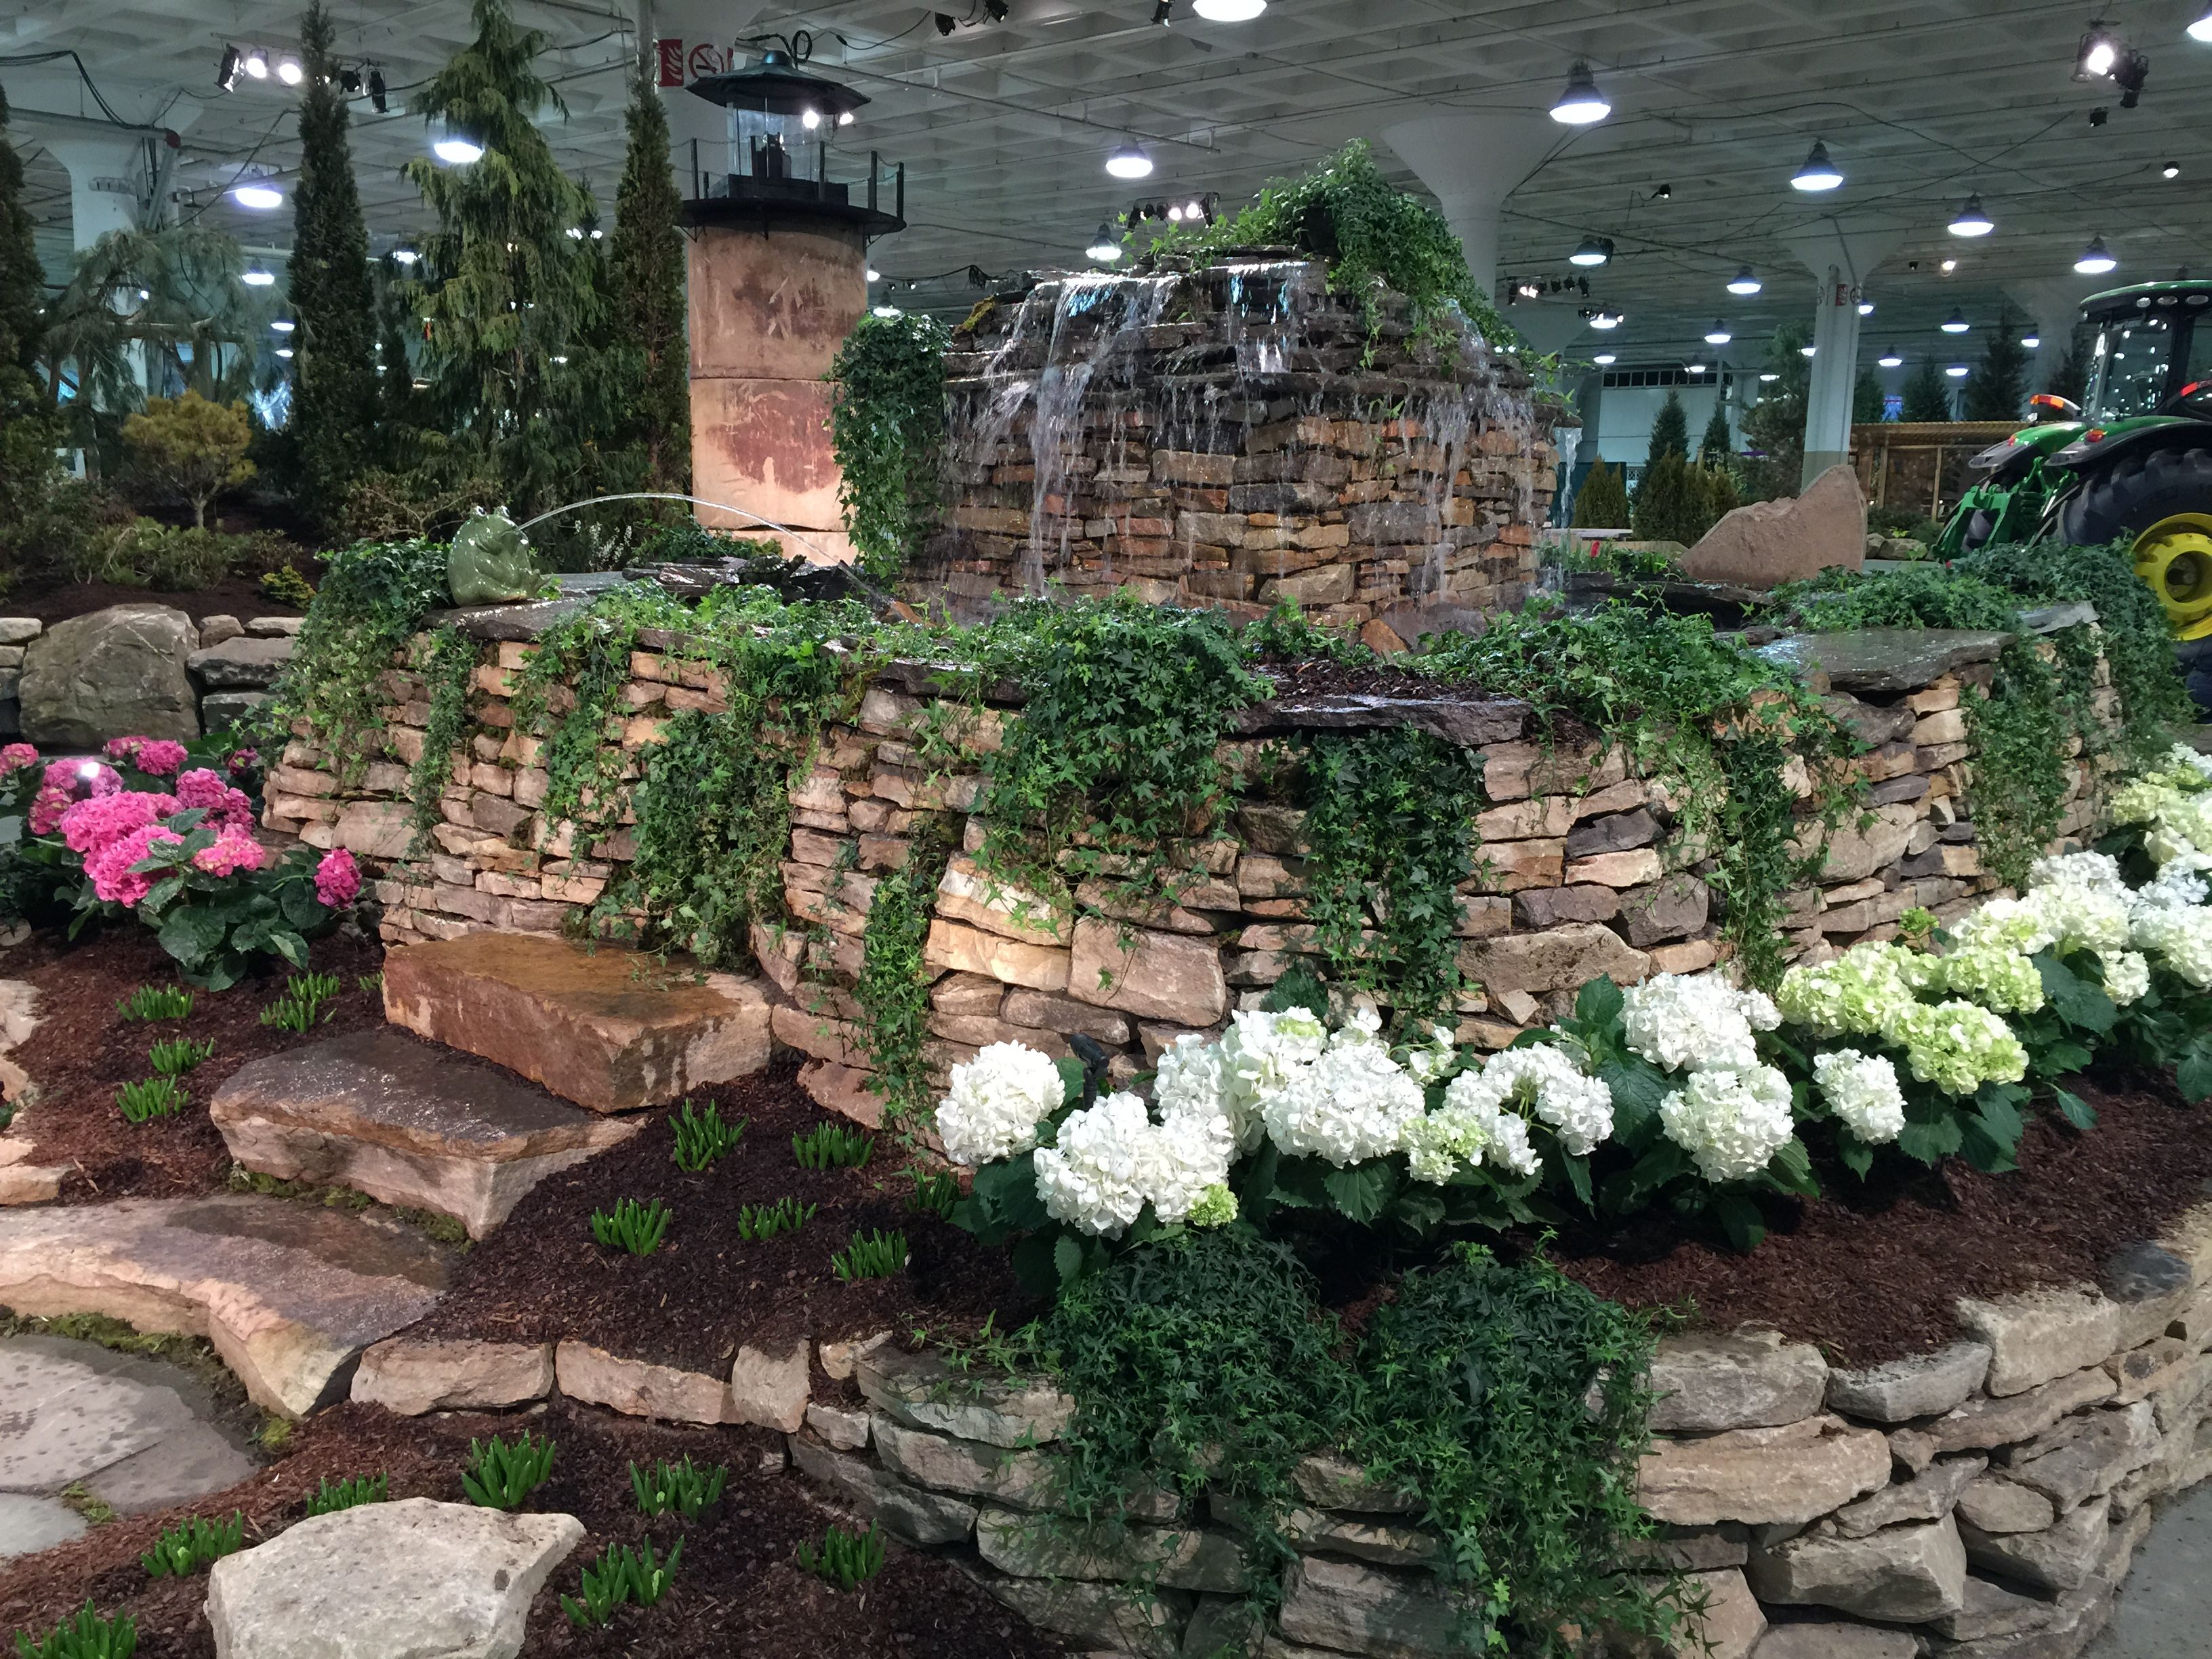 40 Best Cleveland Ohio 2016 Home, Garden U0026 Flower Show Images On Pinterest  | Cleveland Ohio, Garden And Home And Garden